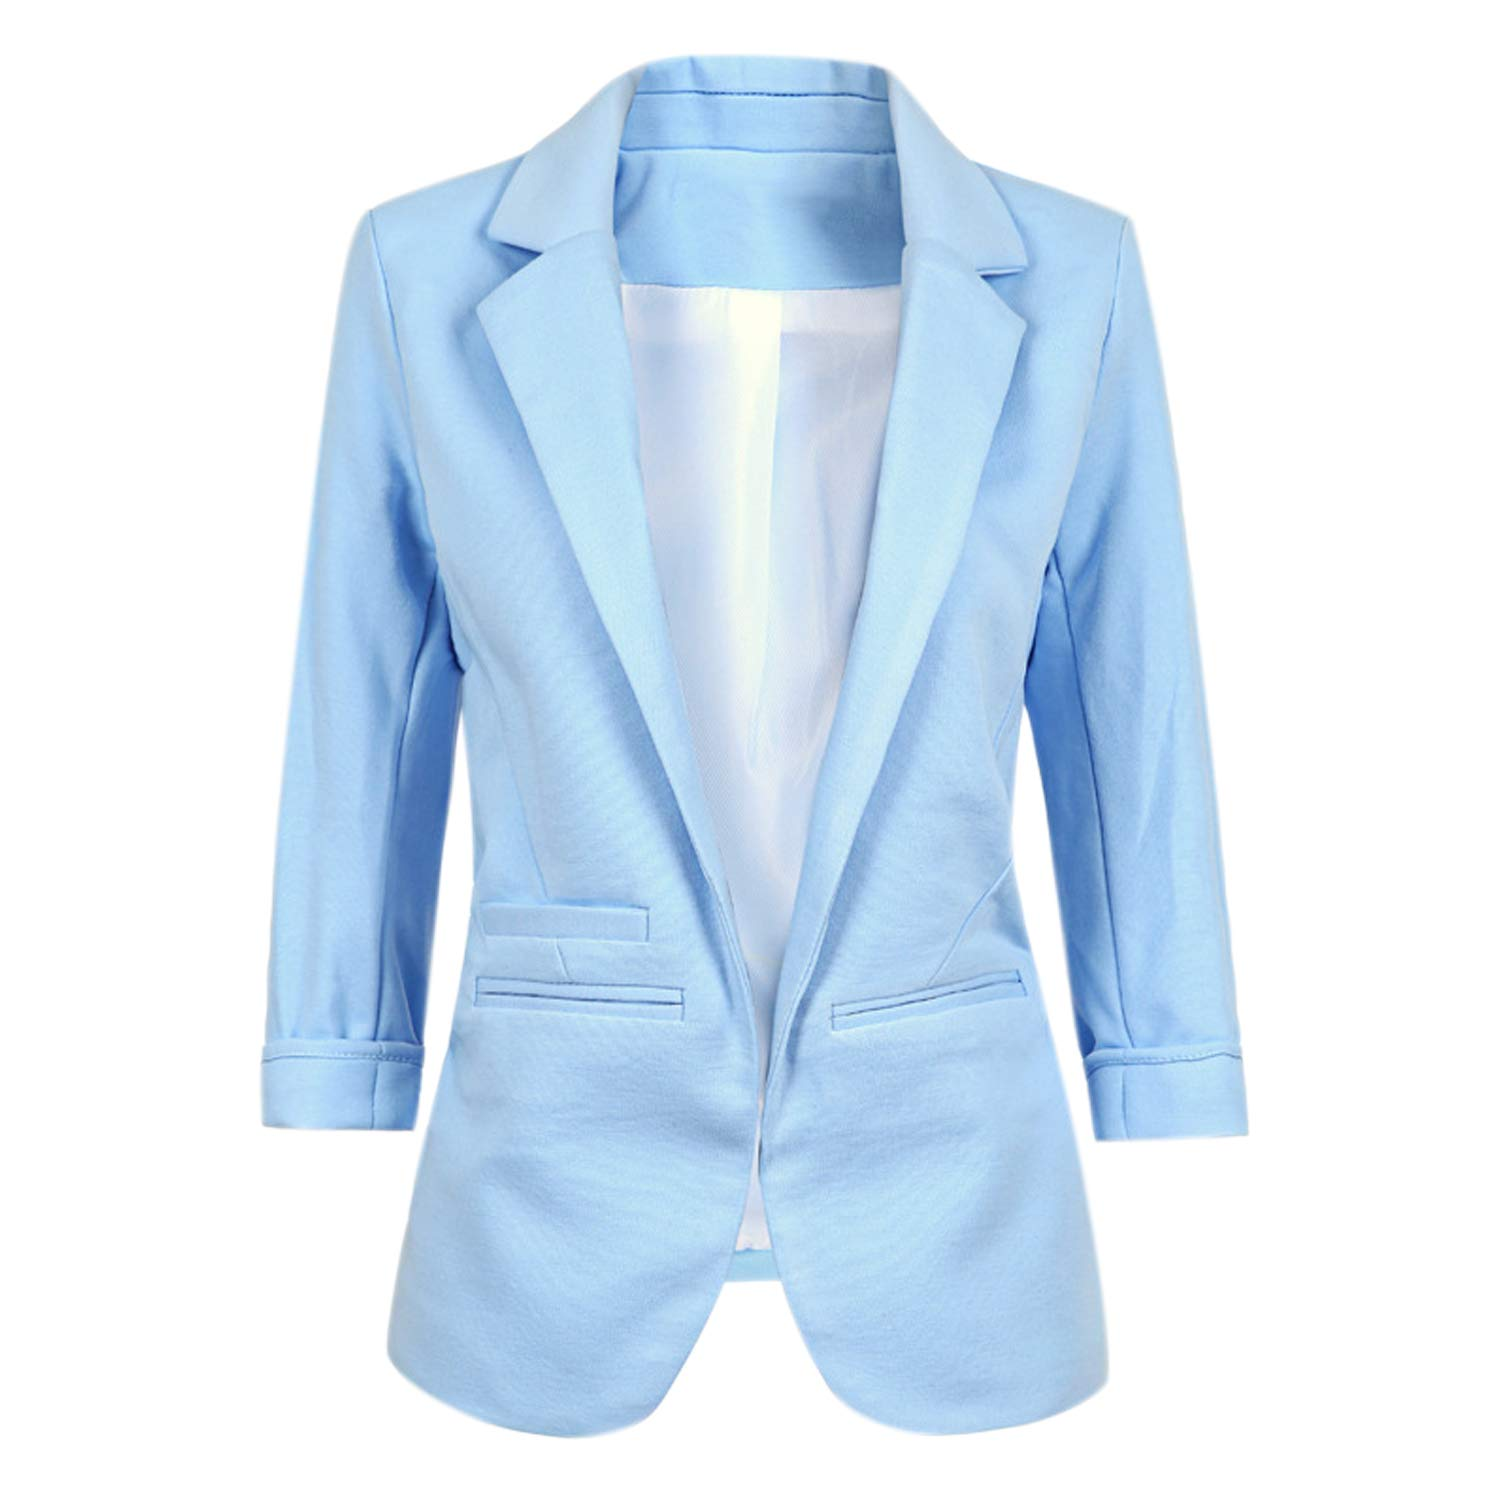 Boyfriend Blazers for Women Rolled Up Casual Office Suit Coat Jacket XGSF1719B01